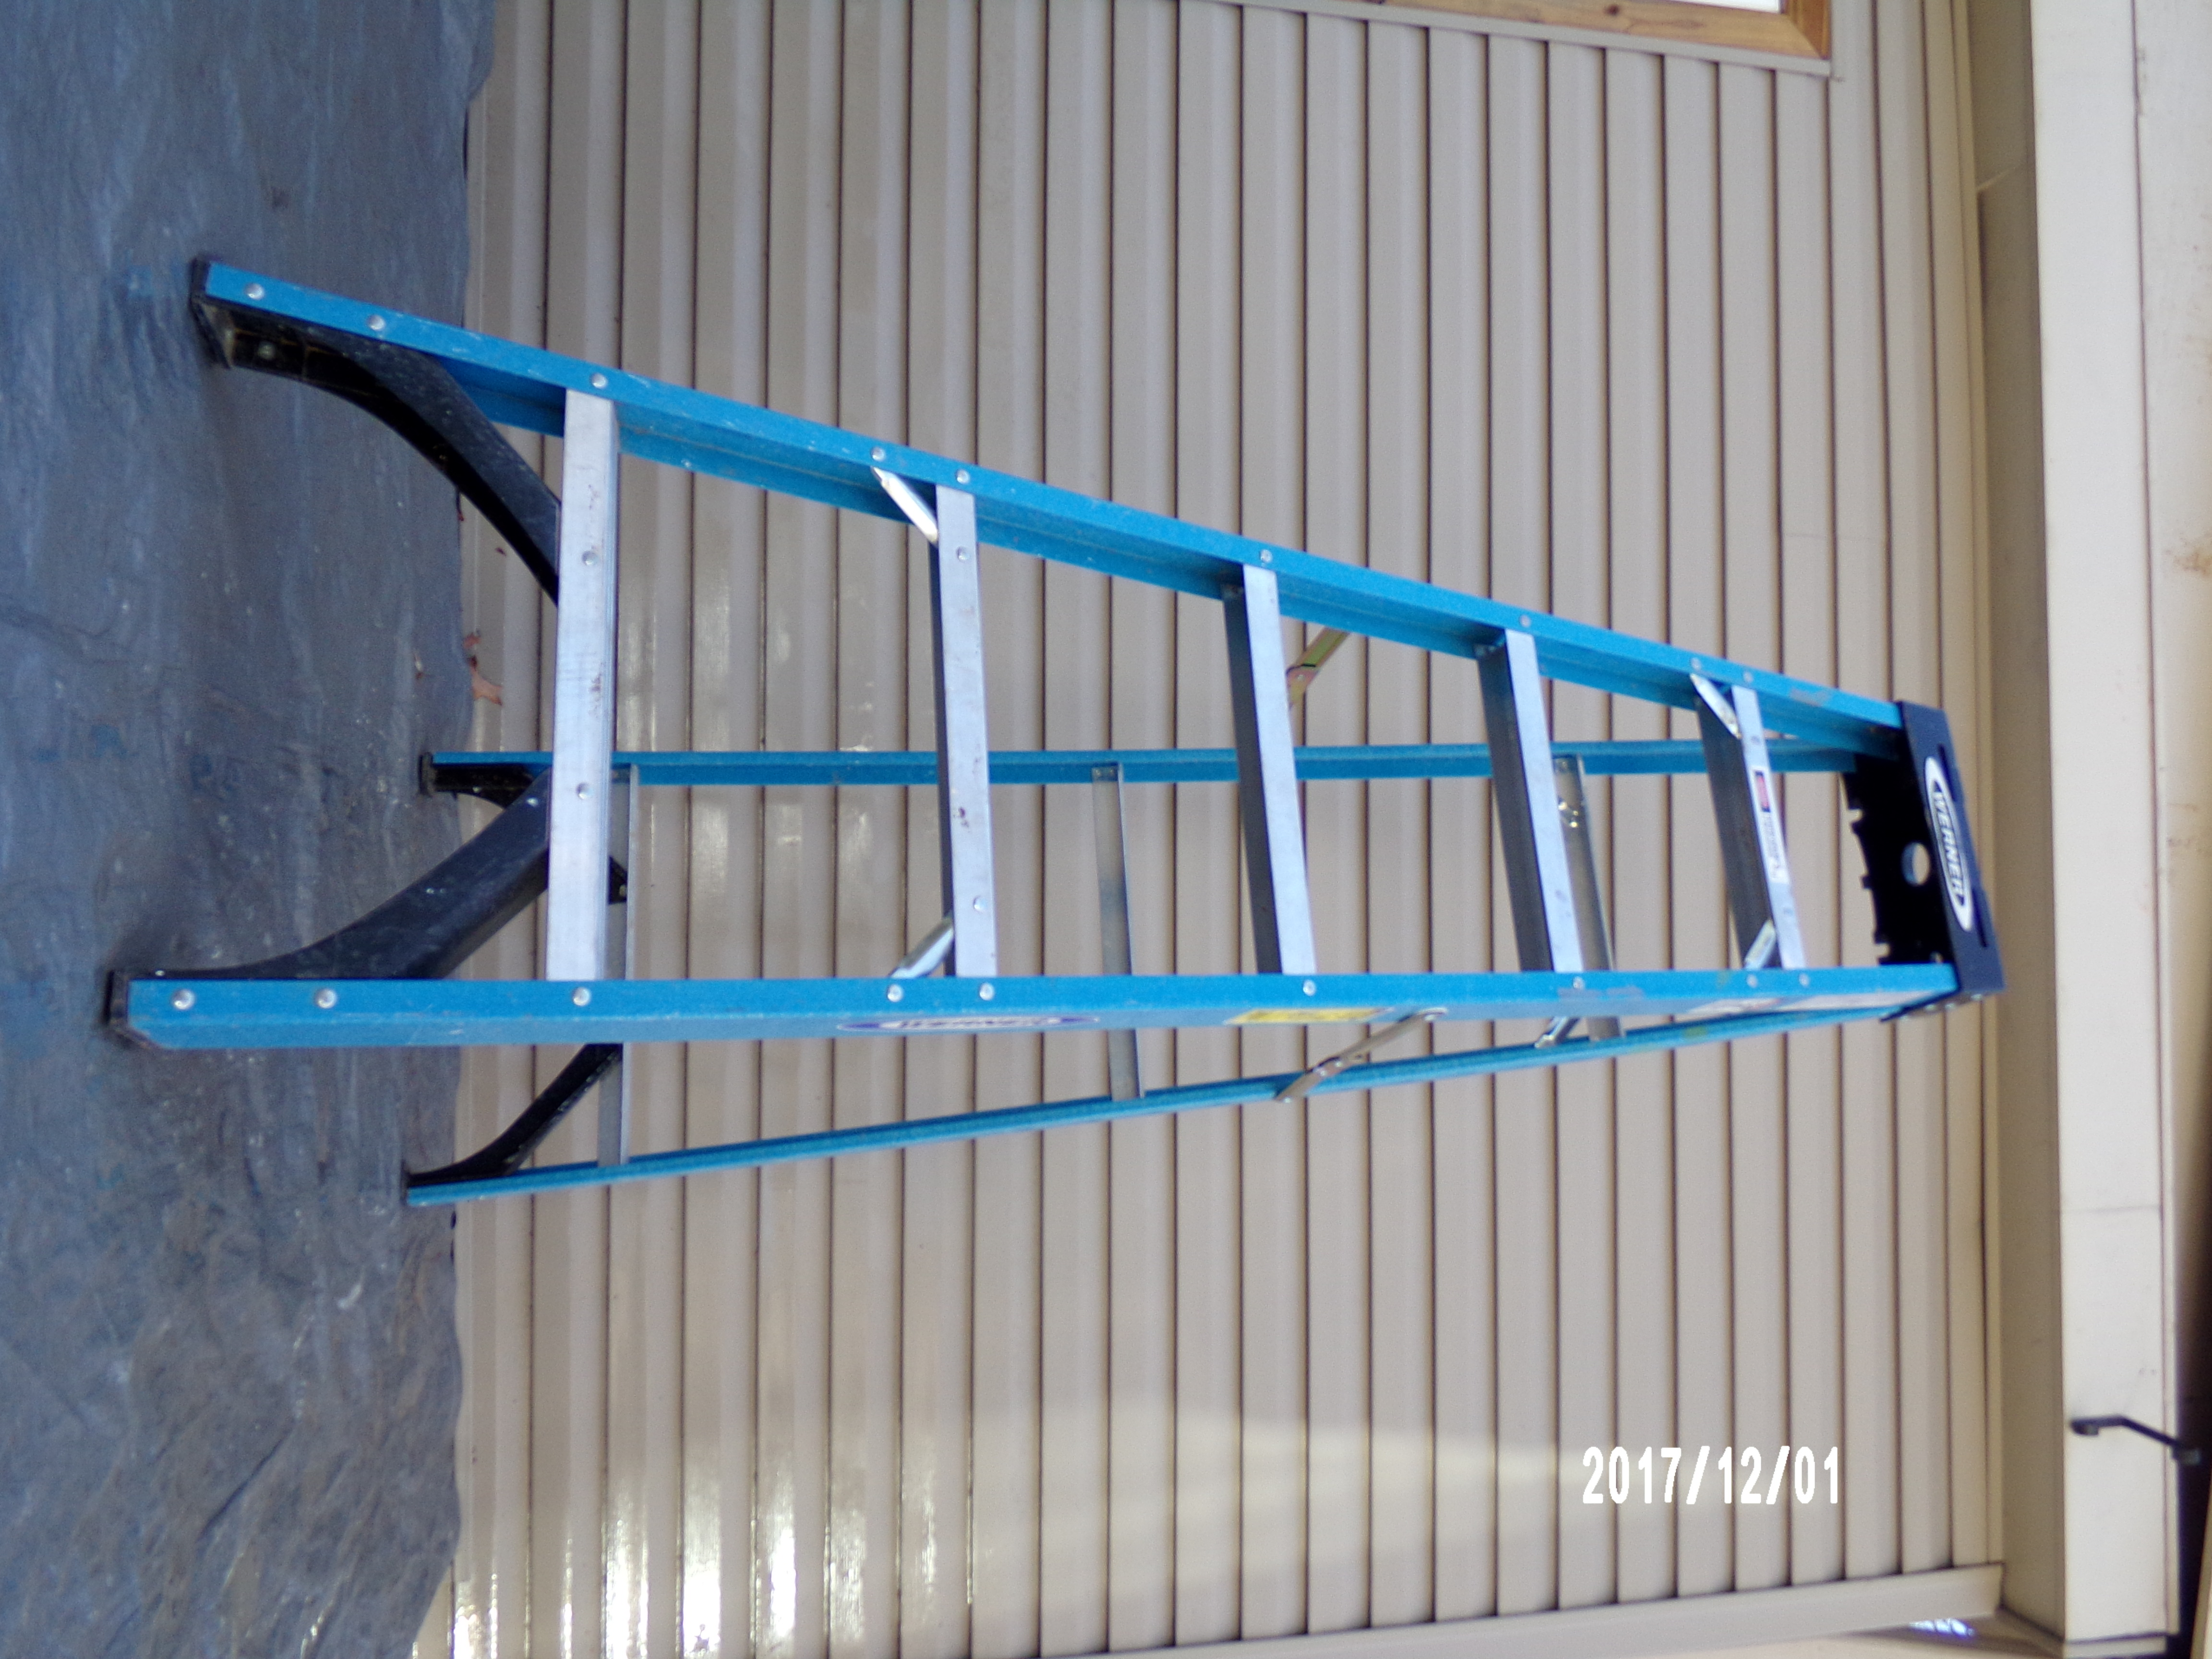 WERNER 6-FT. STEPLADDER